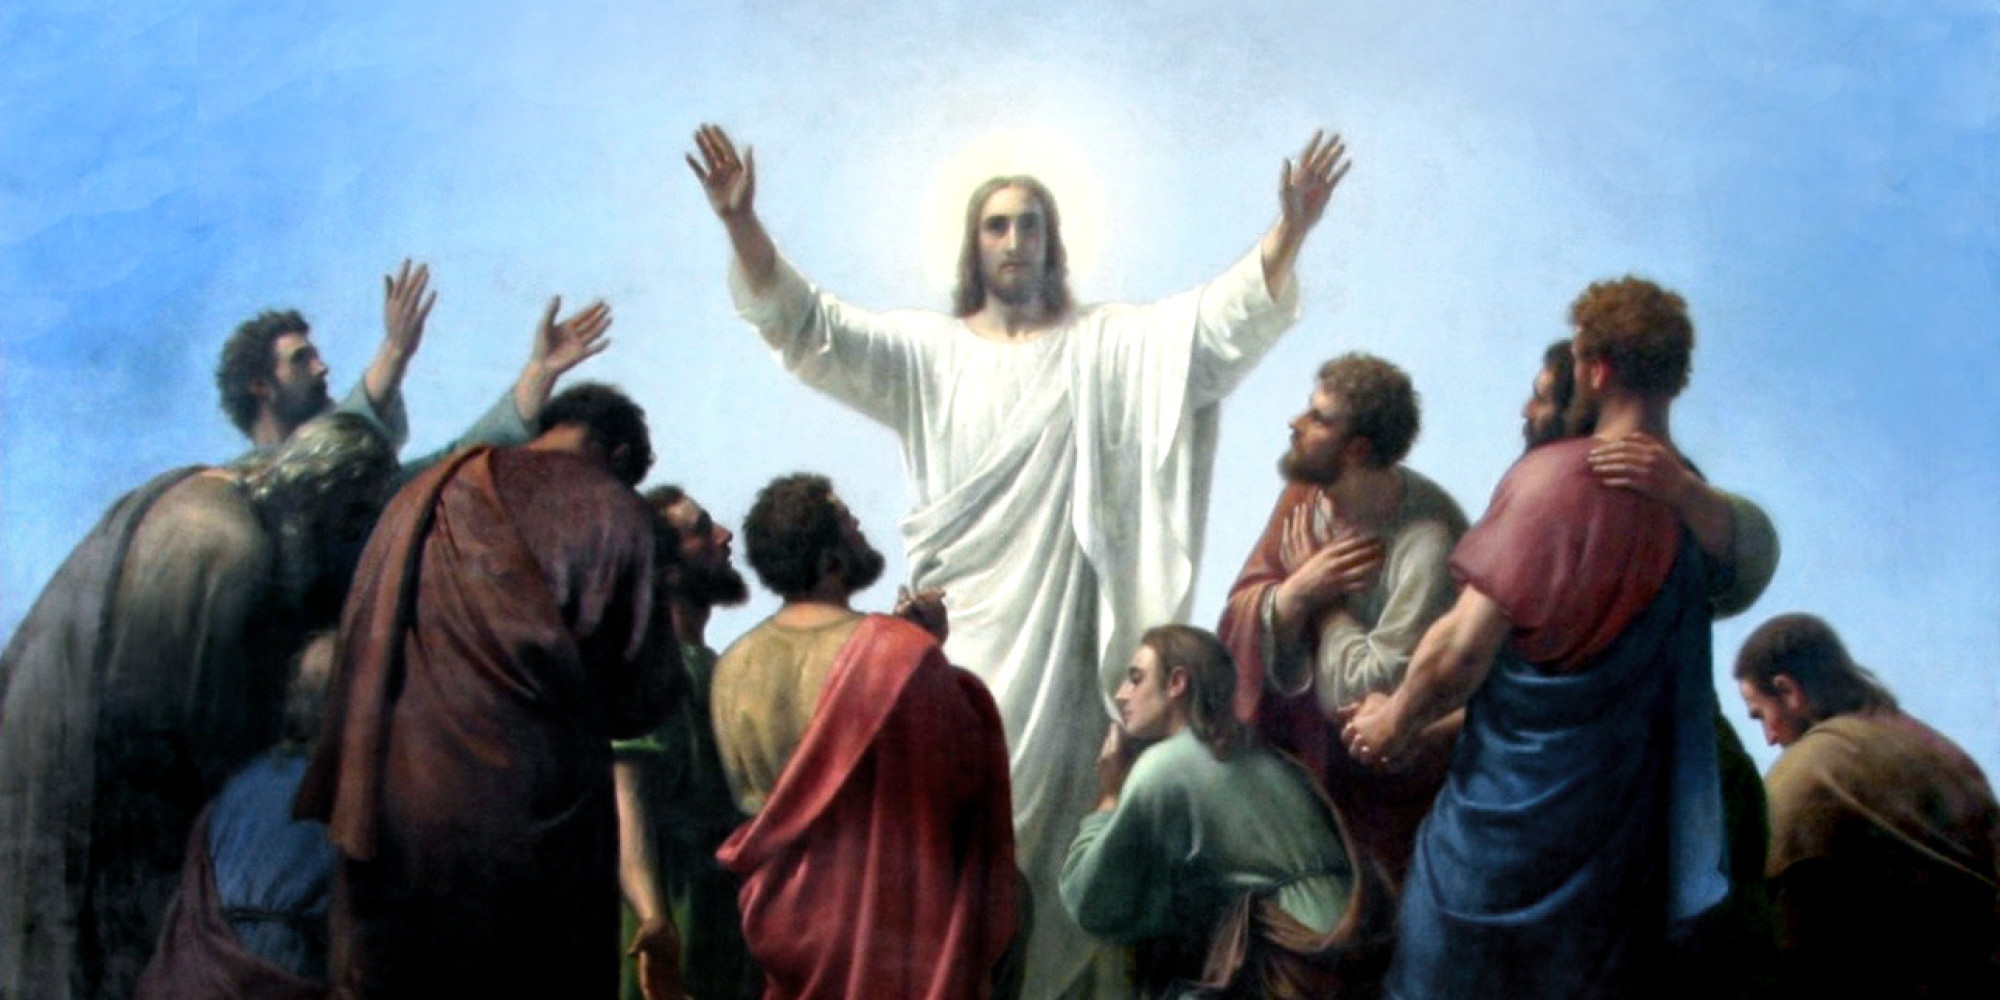 10 reasons to accept the resurrection of jesus as an historical